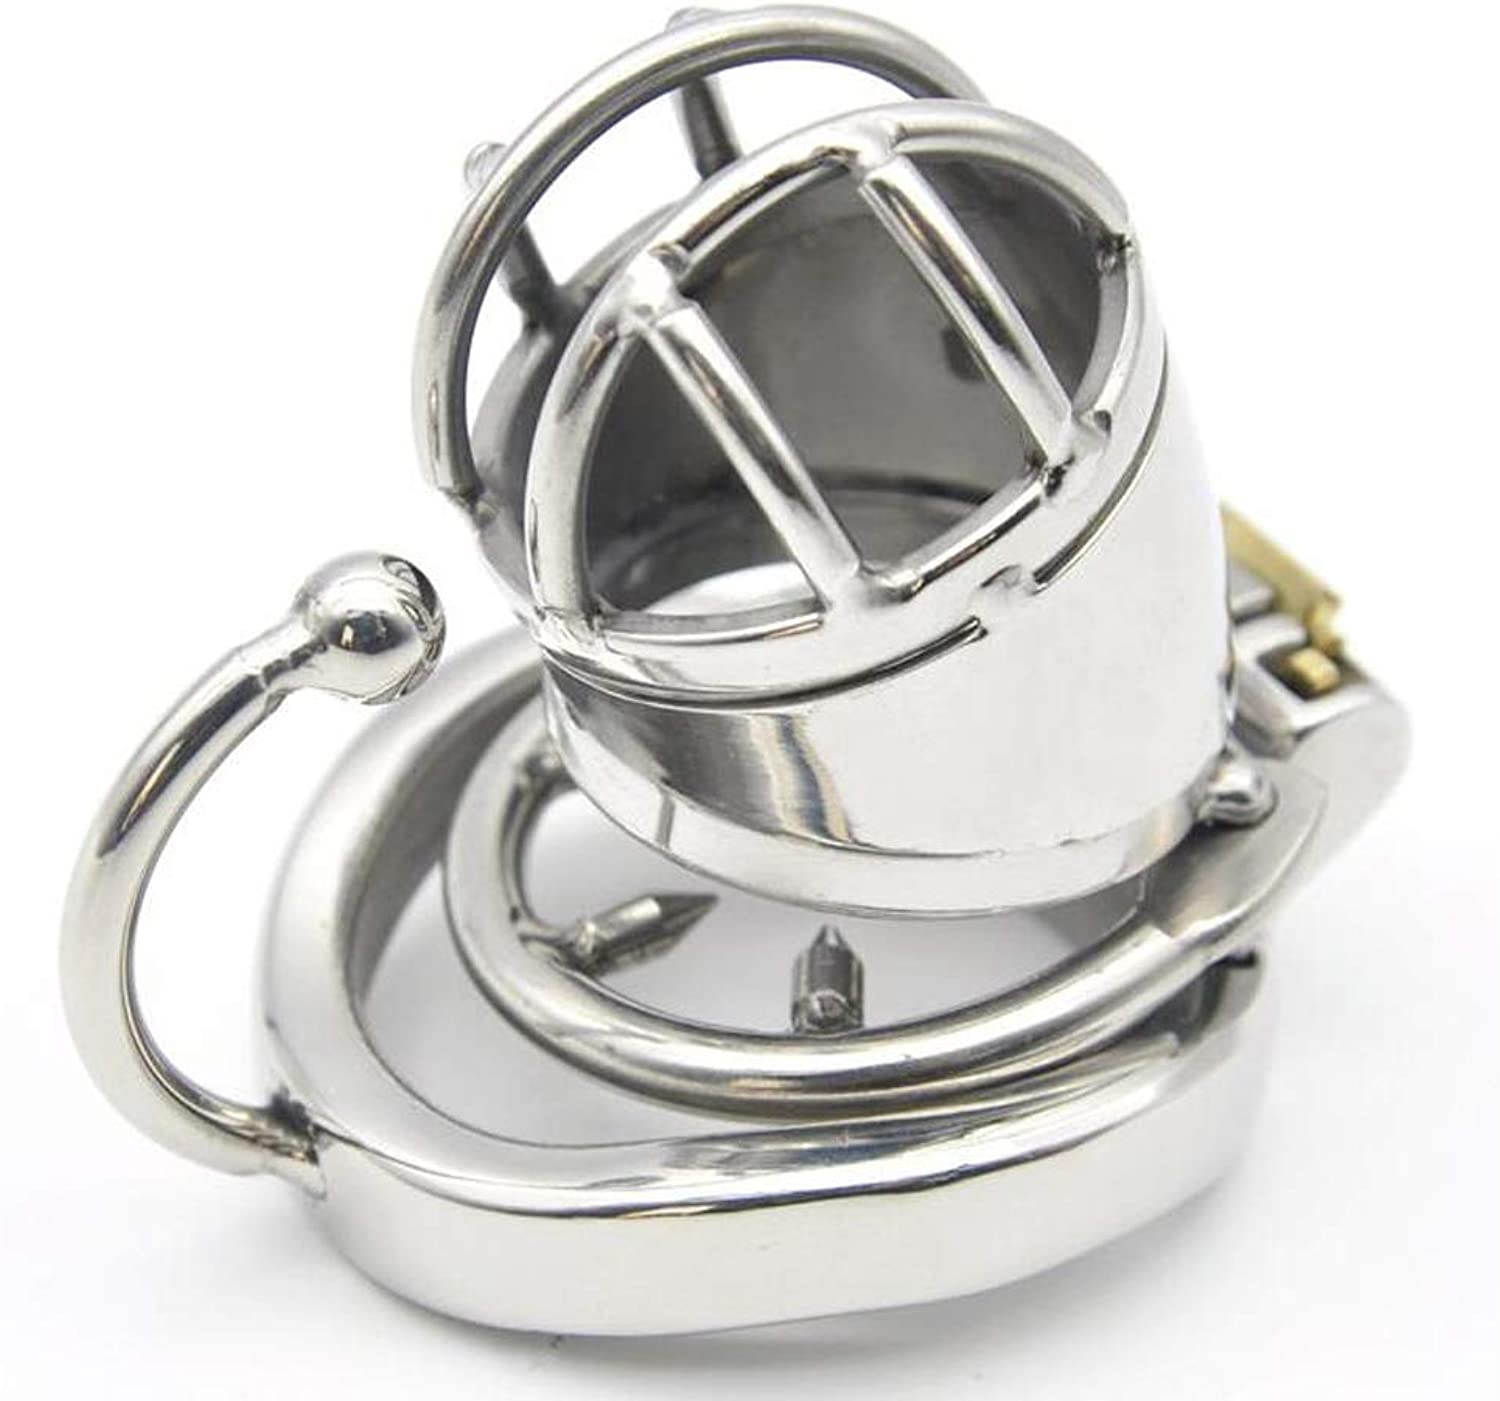 CQ Men's Stainless Steel Arc Chastity Lock Metal Anti-Off Ring Home Personality Creative Stimulation Toys